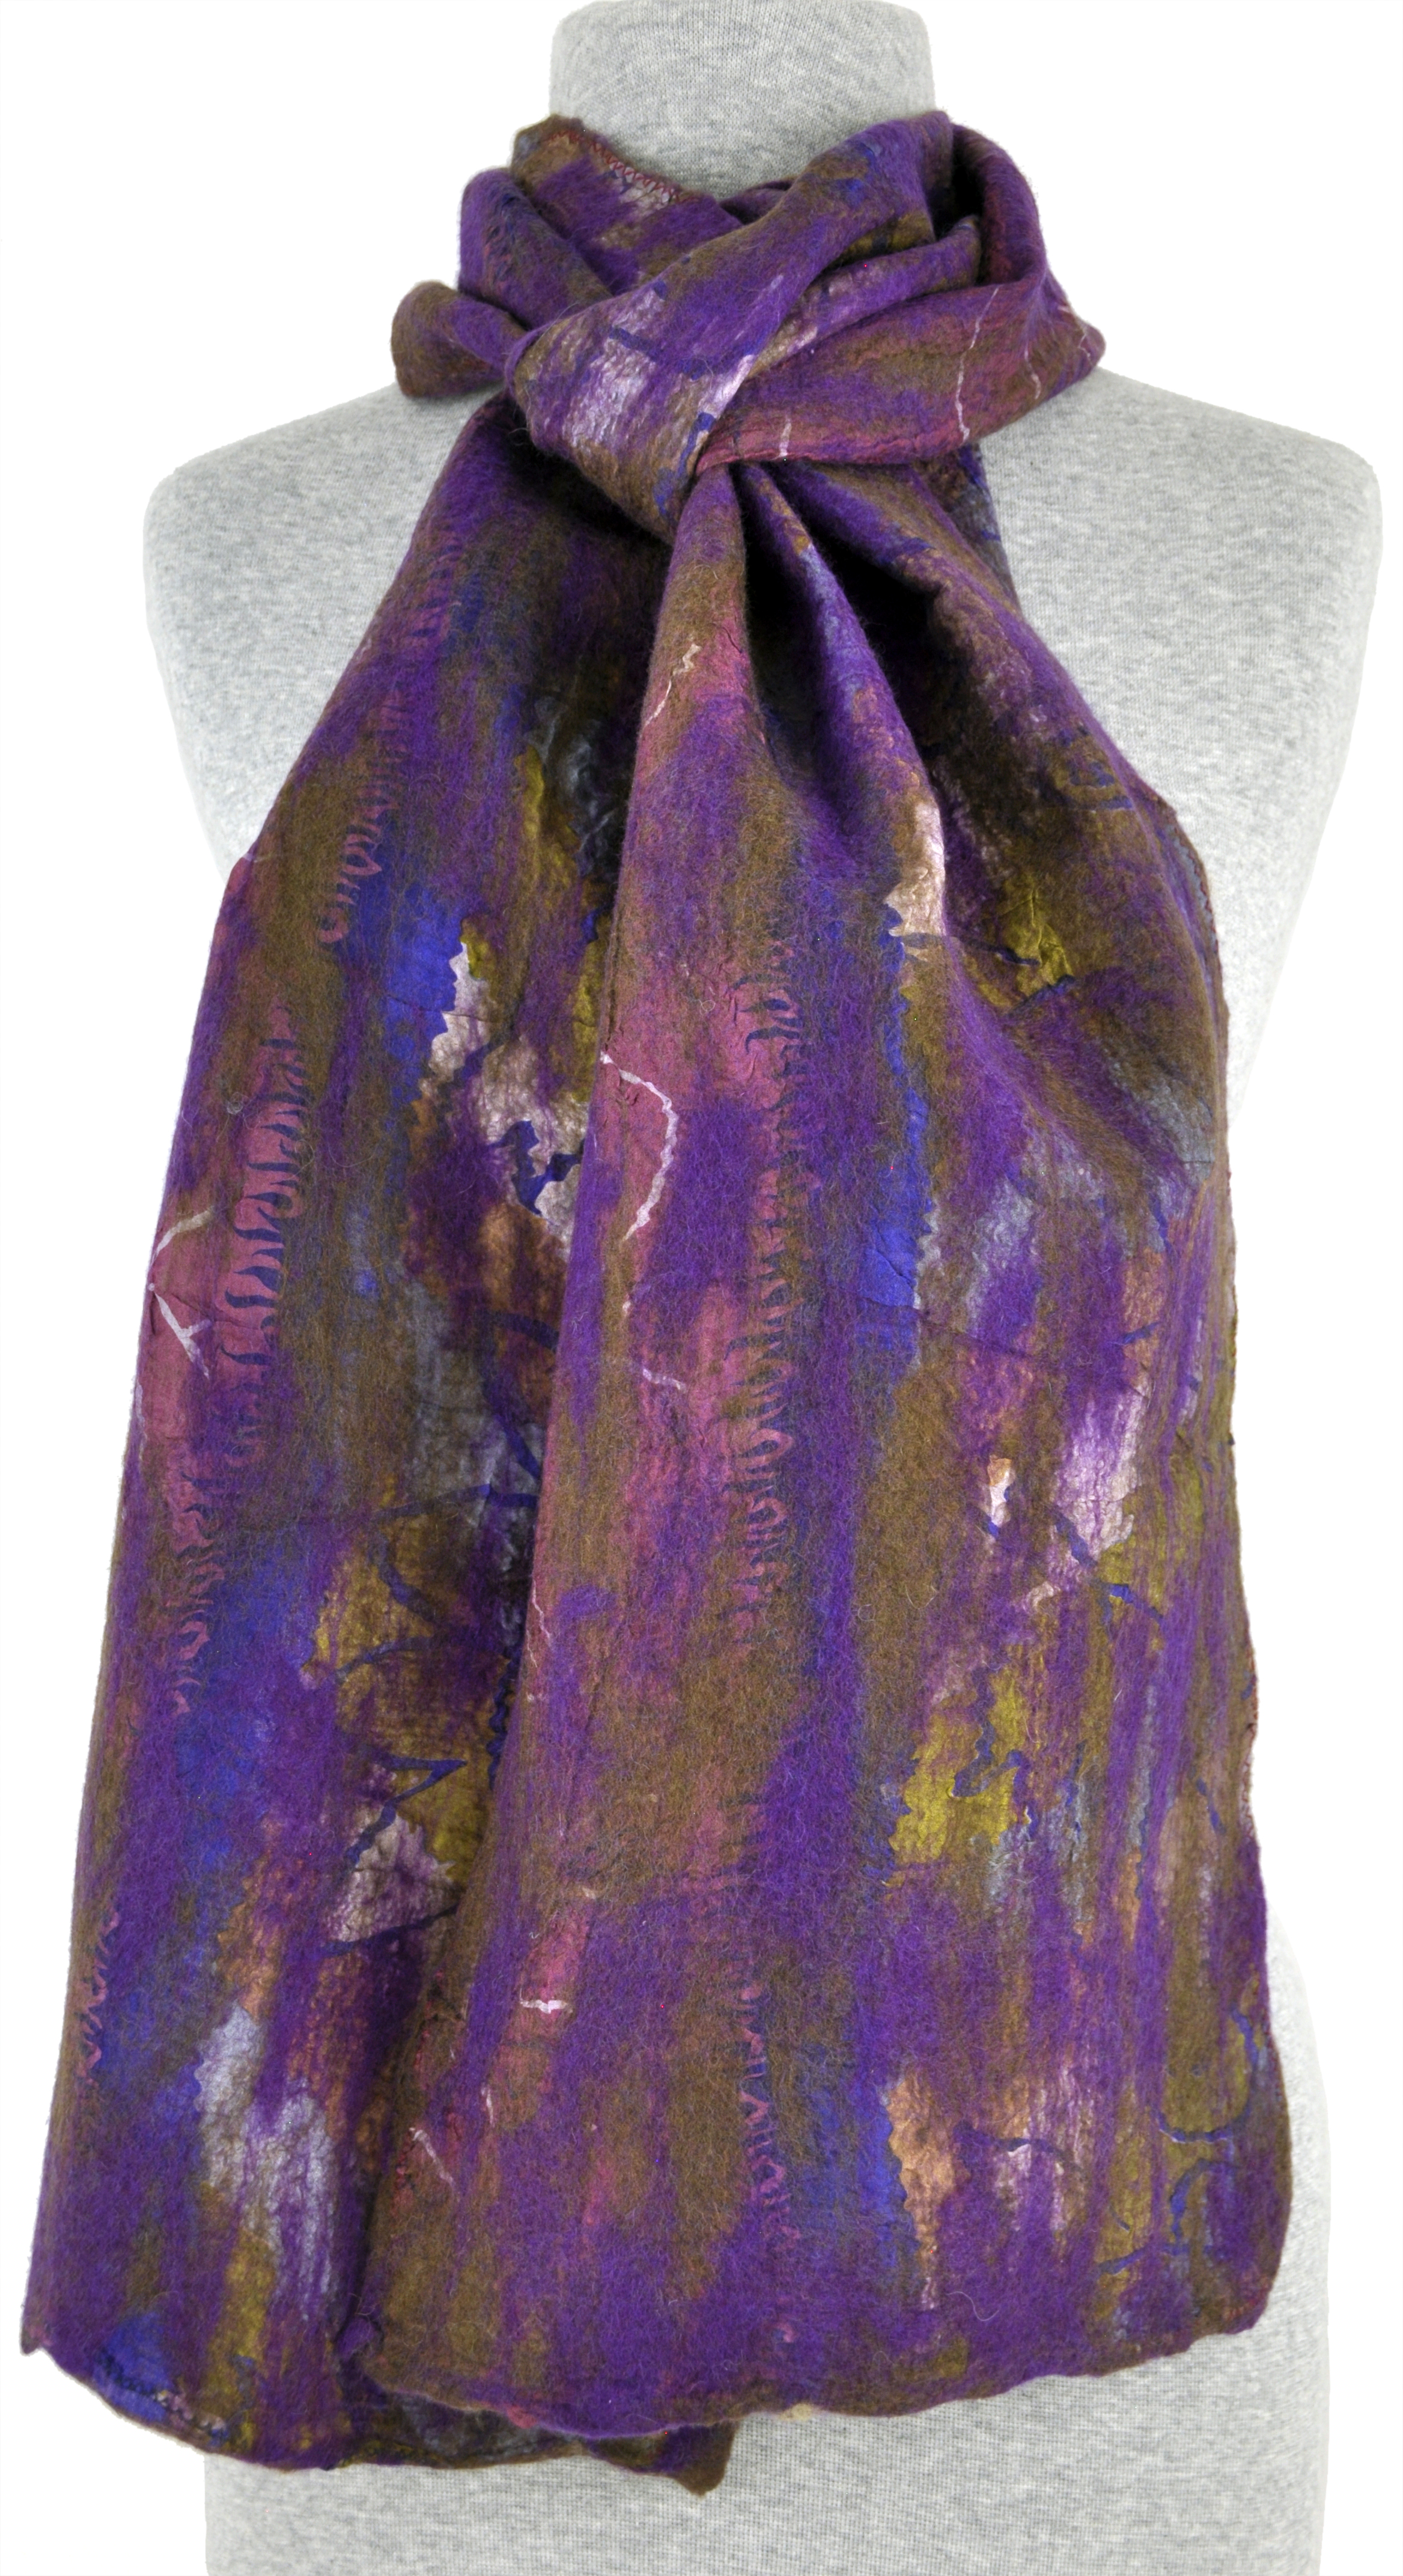 Felted Violet and Gold Sari Collage Scarf